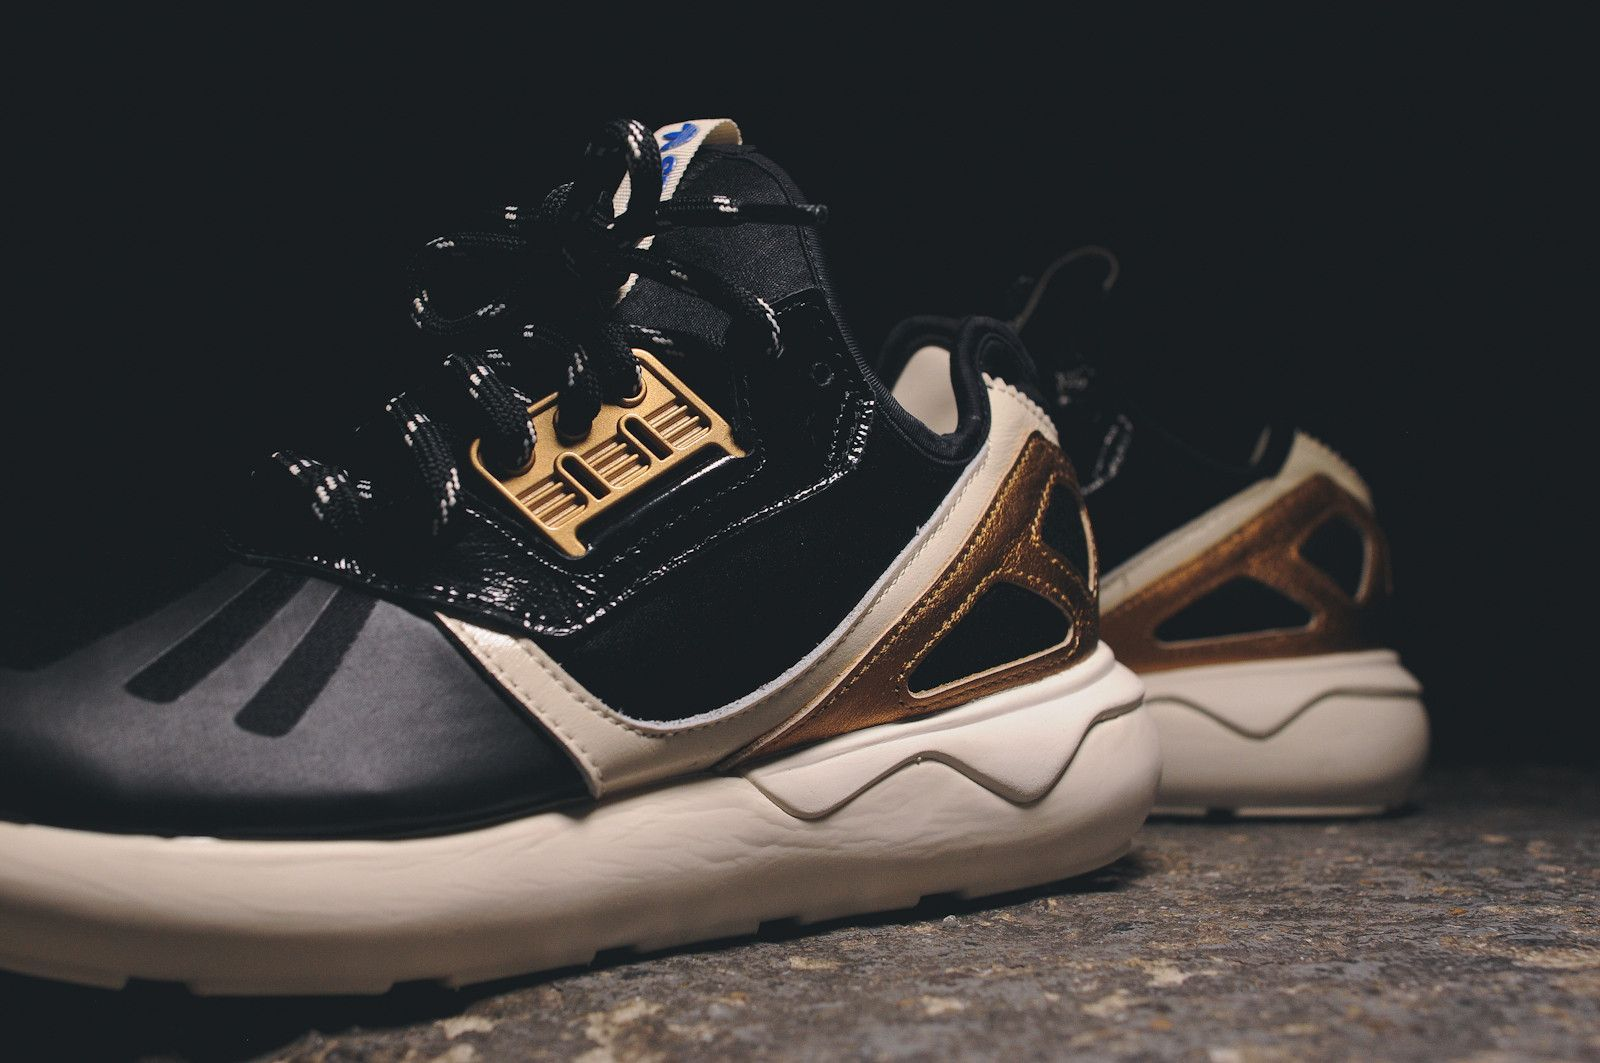 Adidas Originals Tubular Runner - Black / Gold / White